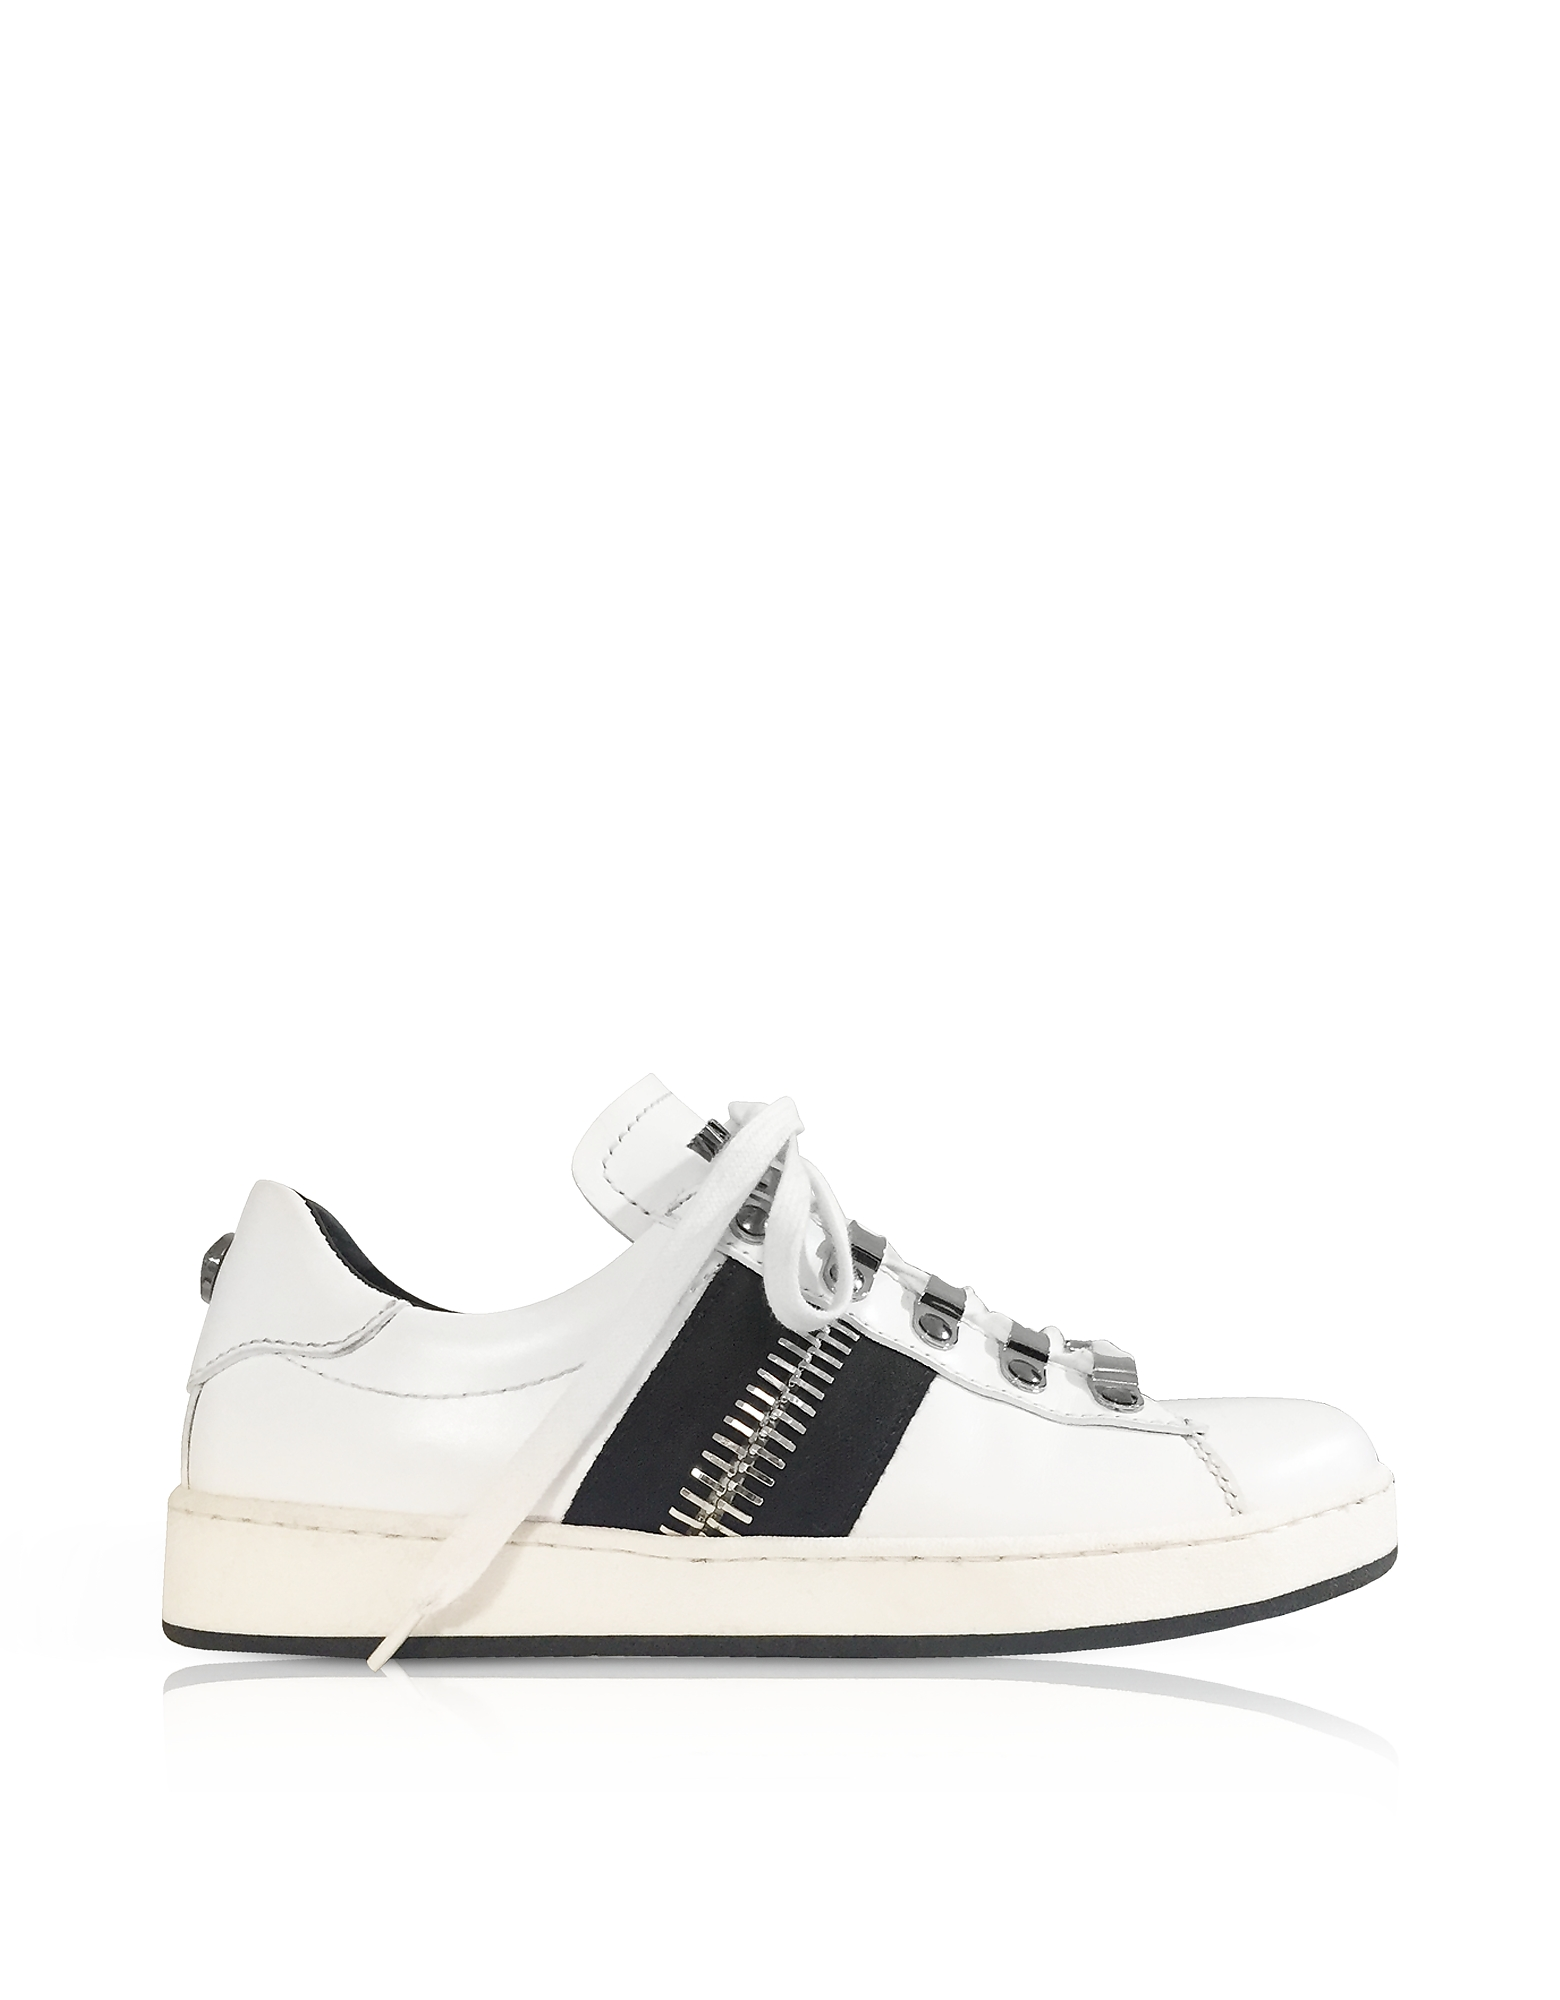 White Calfskin Lace-Up Low-Rise Sneaker. from STYLEBOP.com